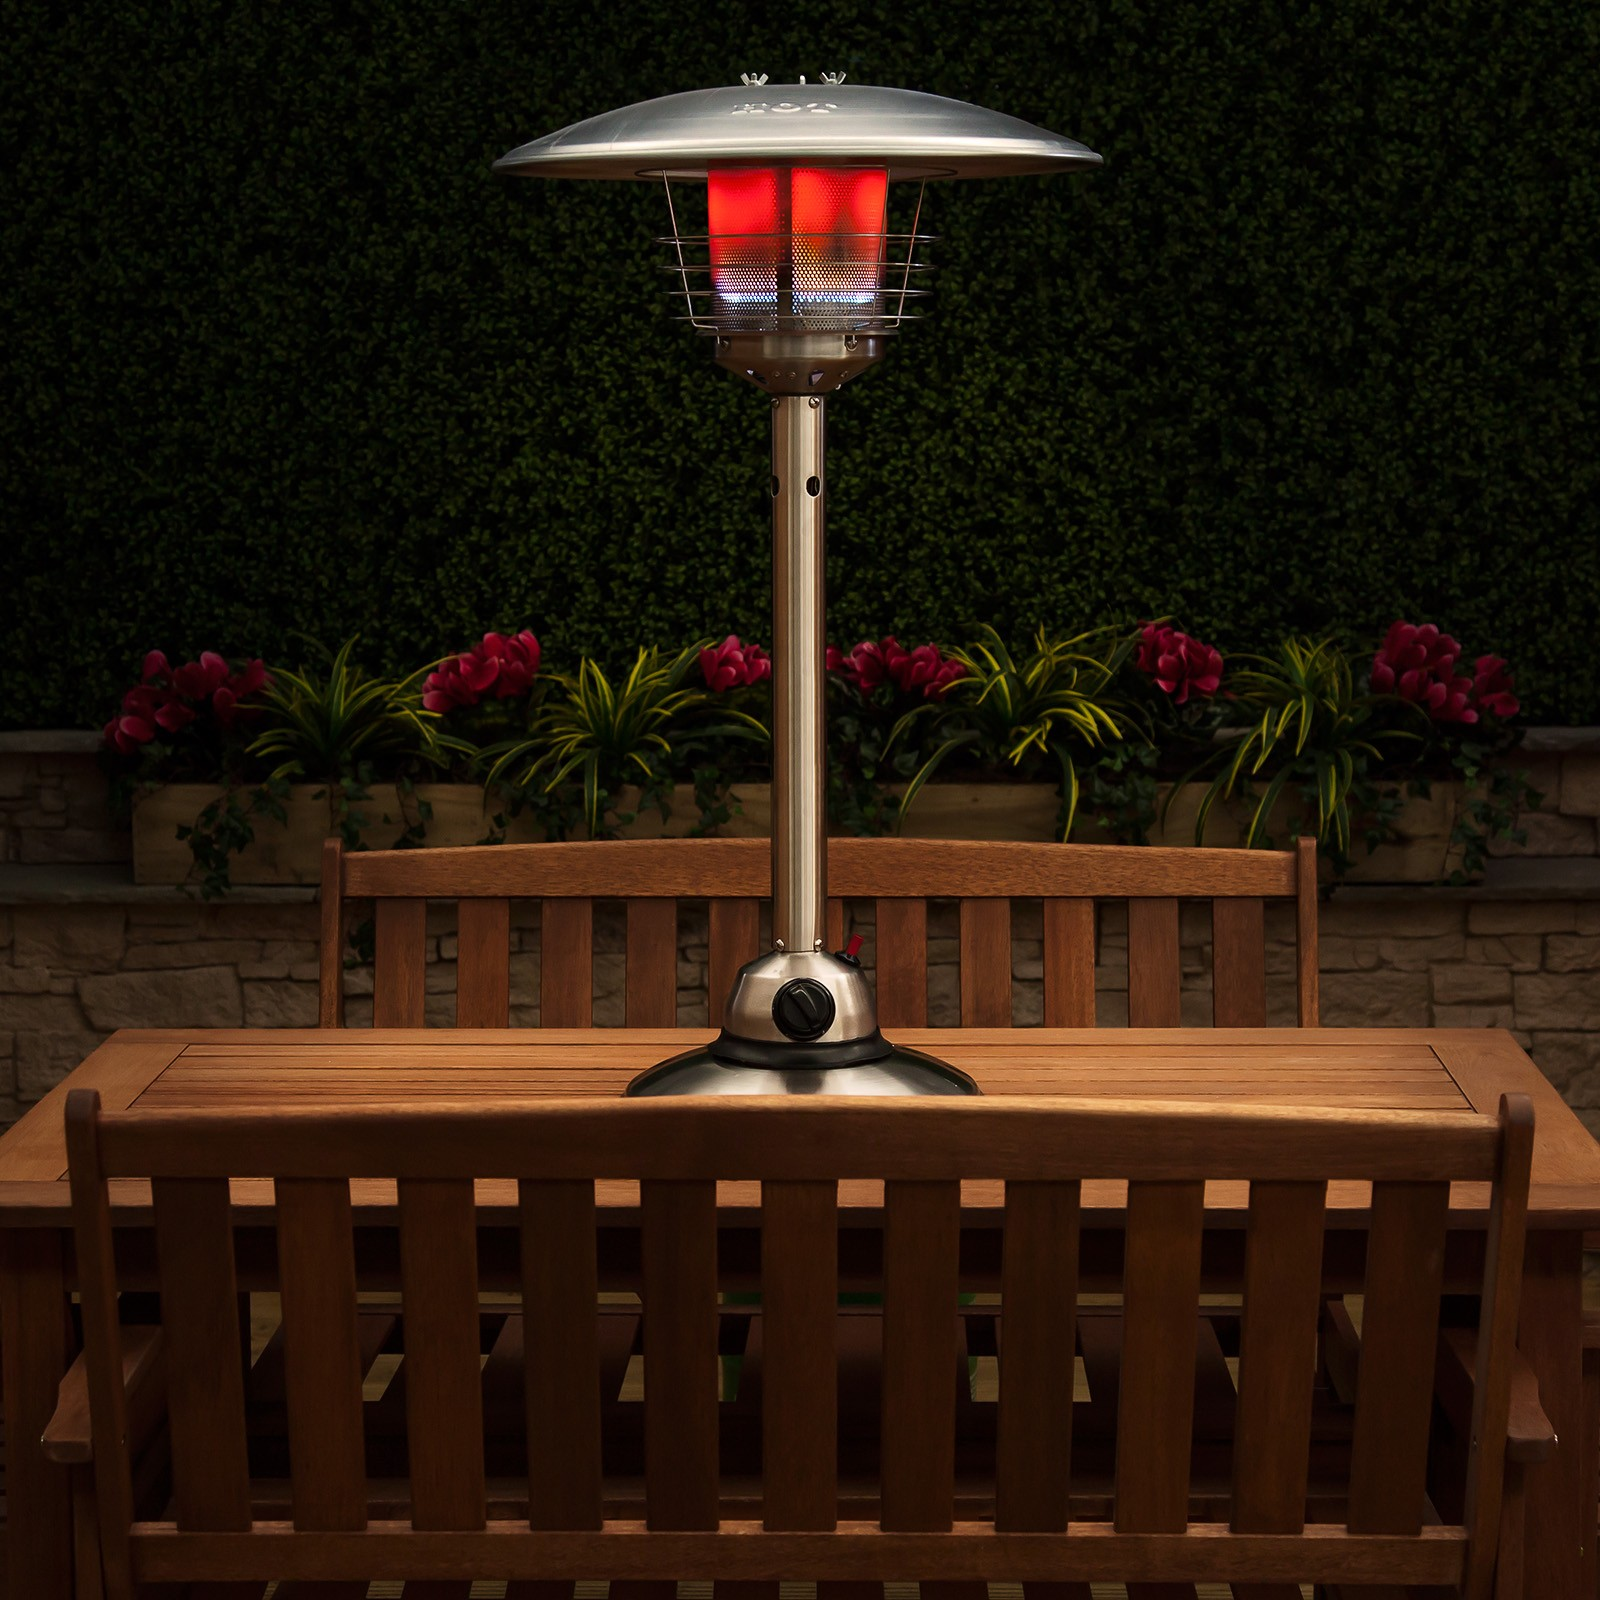 Best Patio Heater 2018 Top 10 Patio Heaters Reviewed